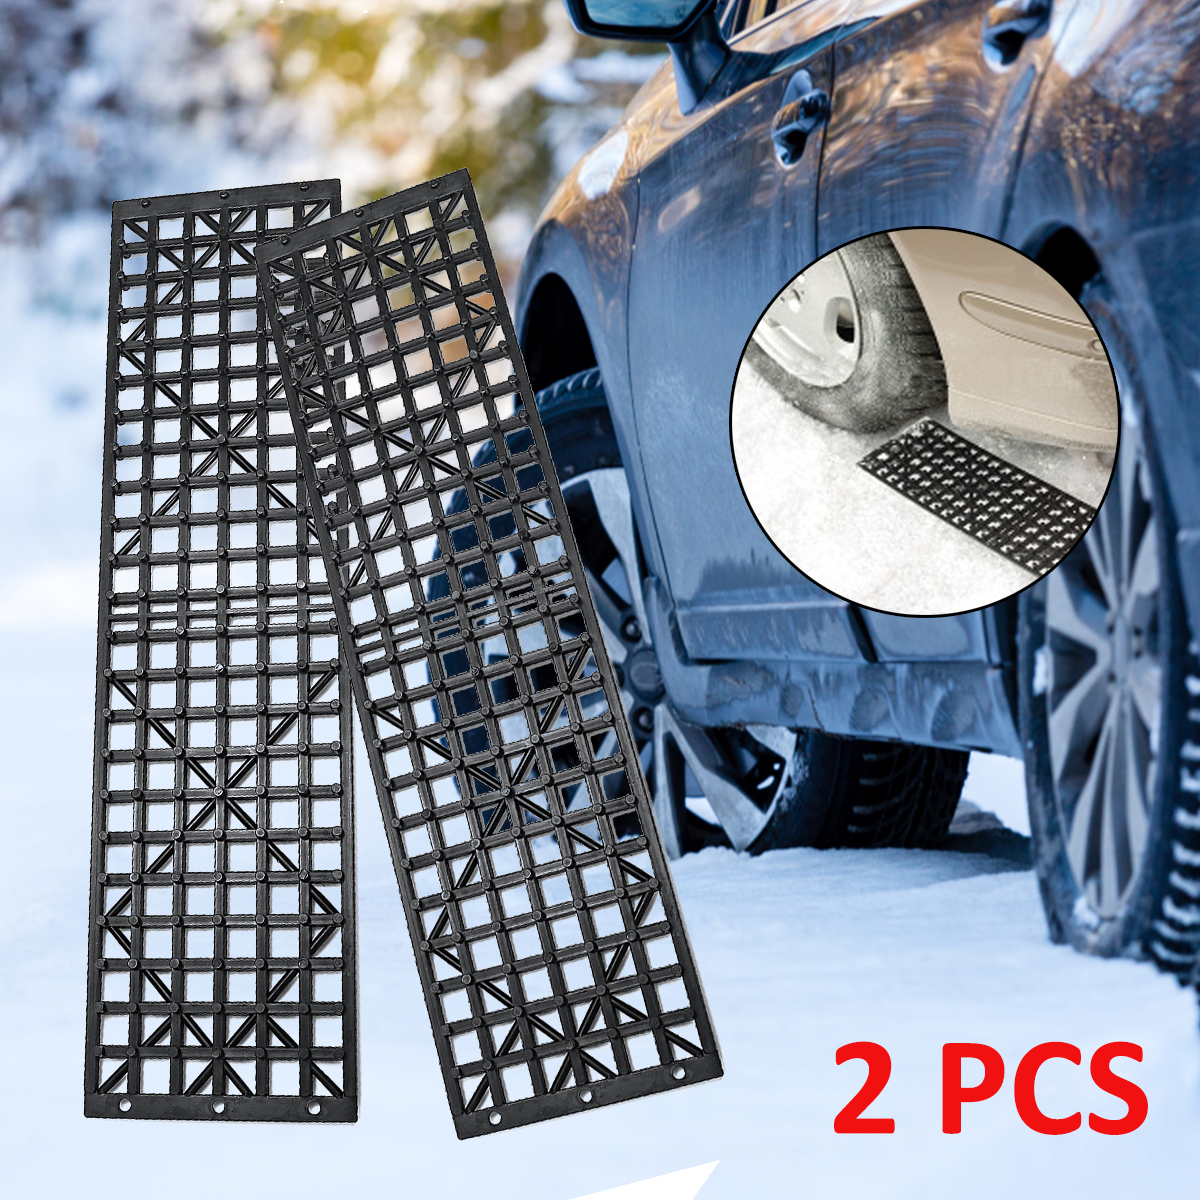 2Pcs Car Road Trouble Clearer Auto Vehicle Truck Winter Snow Chains Mud Tires Recovery Traction Mat Wheel Chain Non slip Tracks|Car Road Trouble Clearer| |  - title=